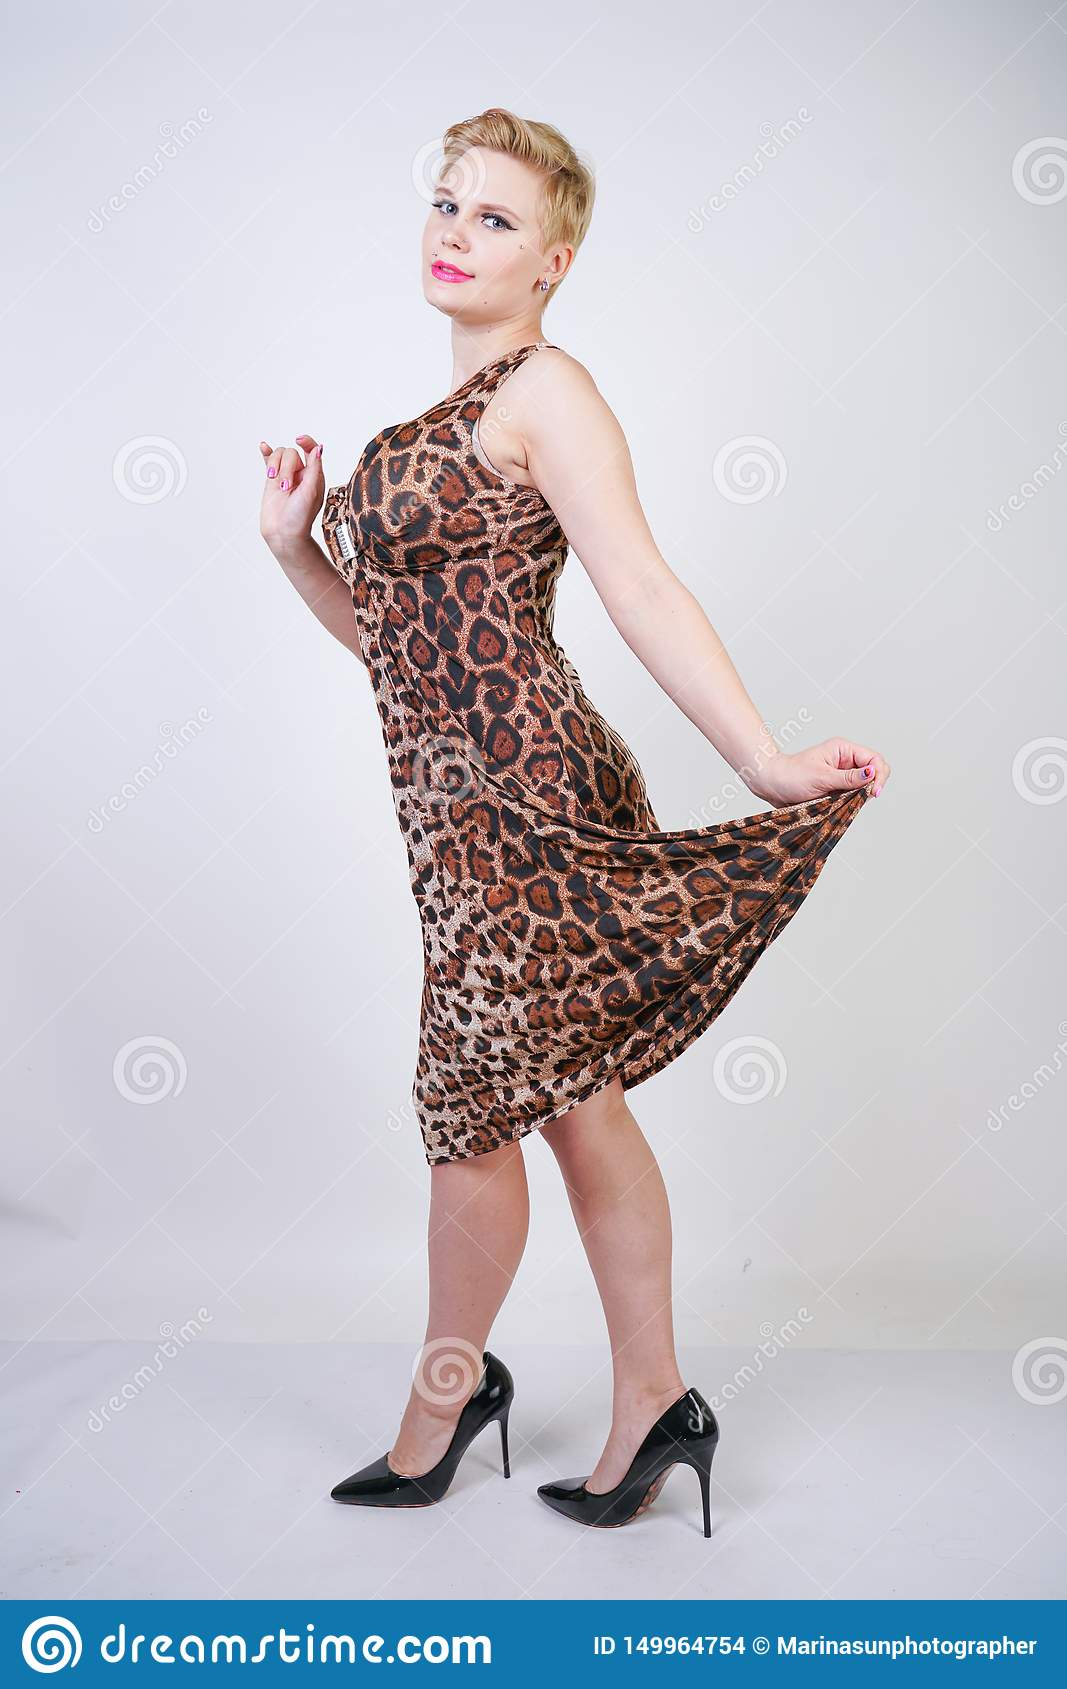 Pretty Plus Size Young Woman With Short Blonde Hair Wearing ...